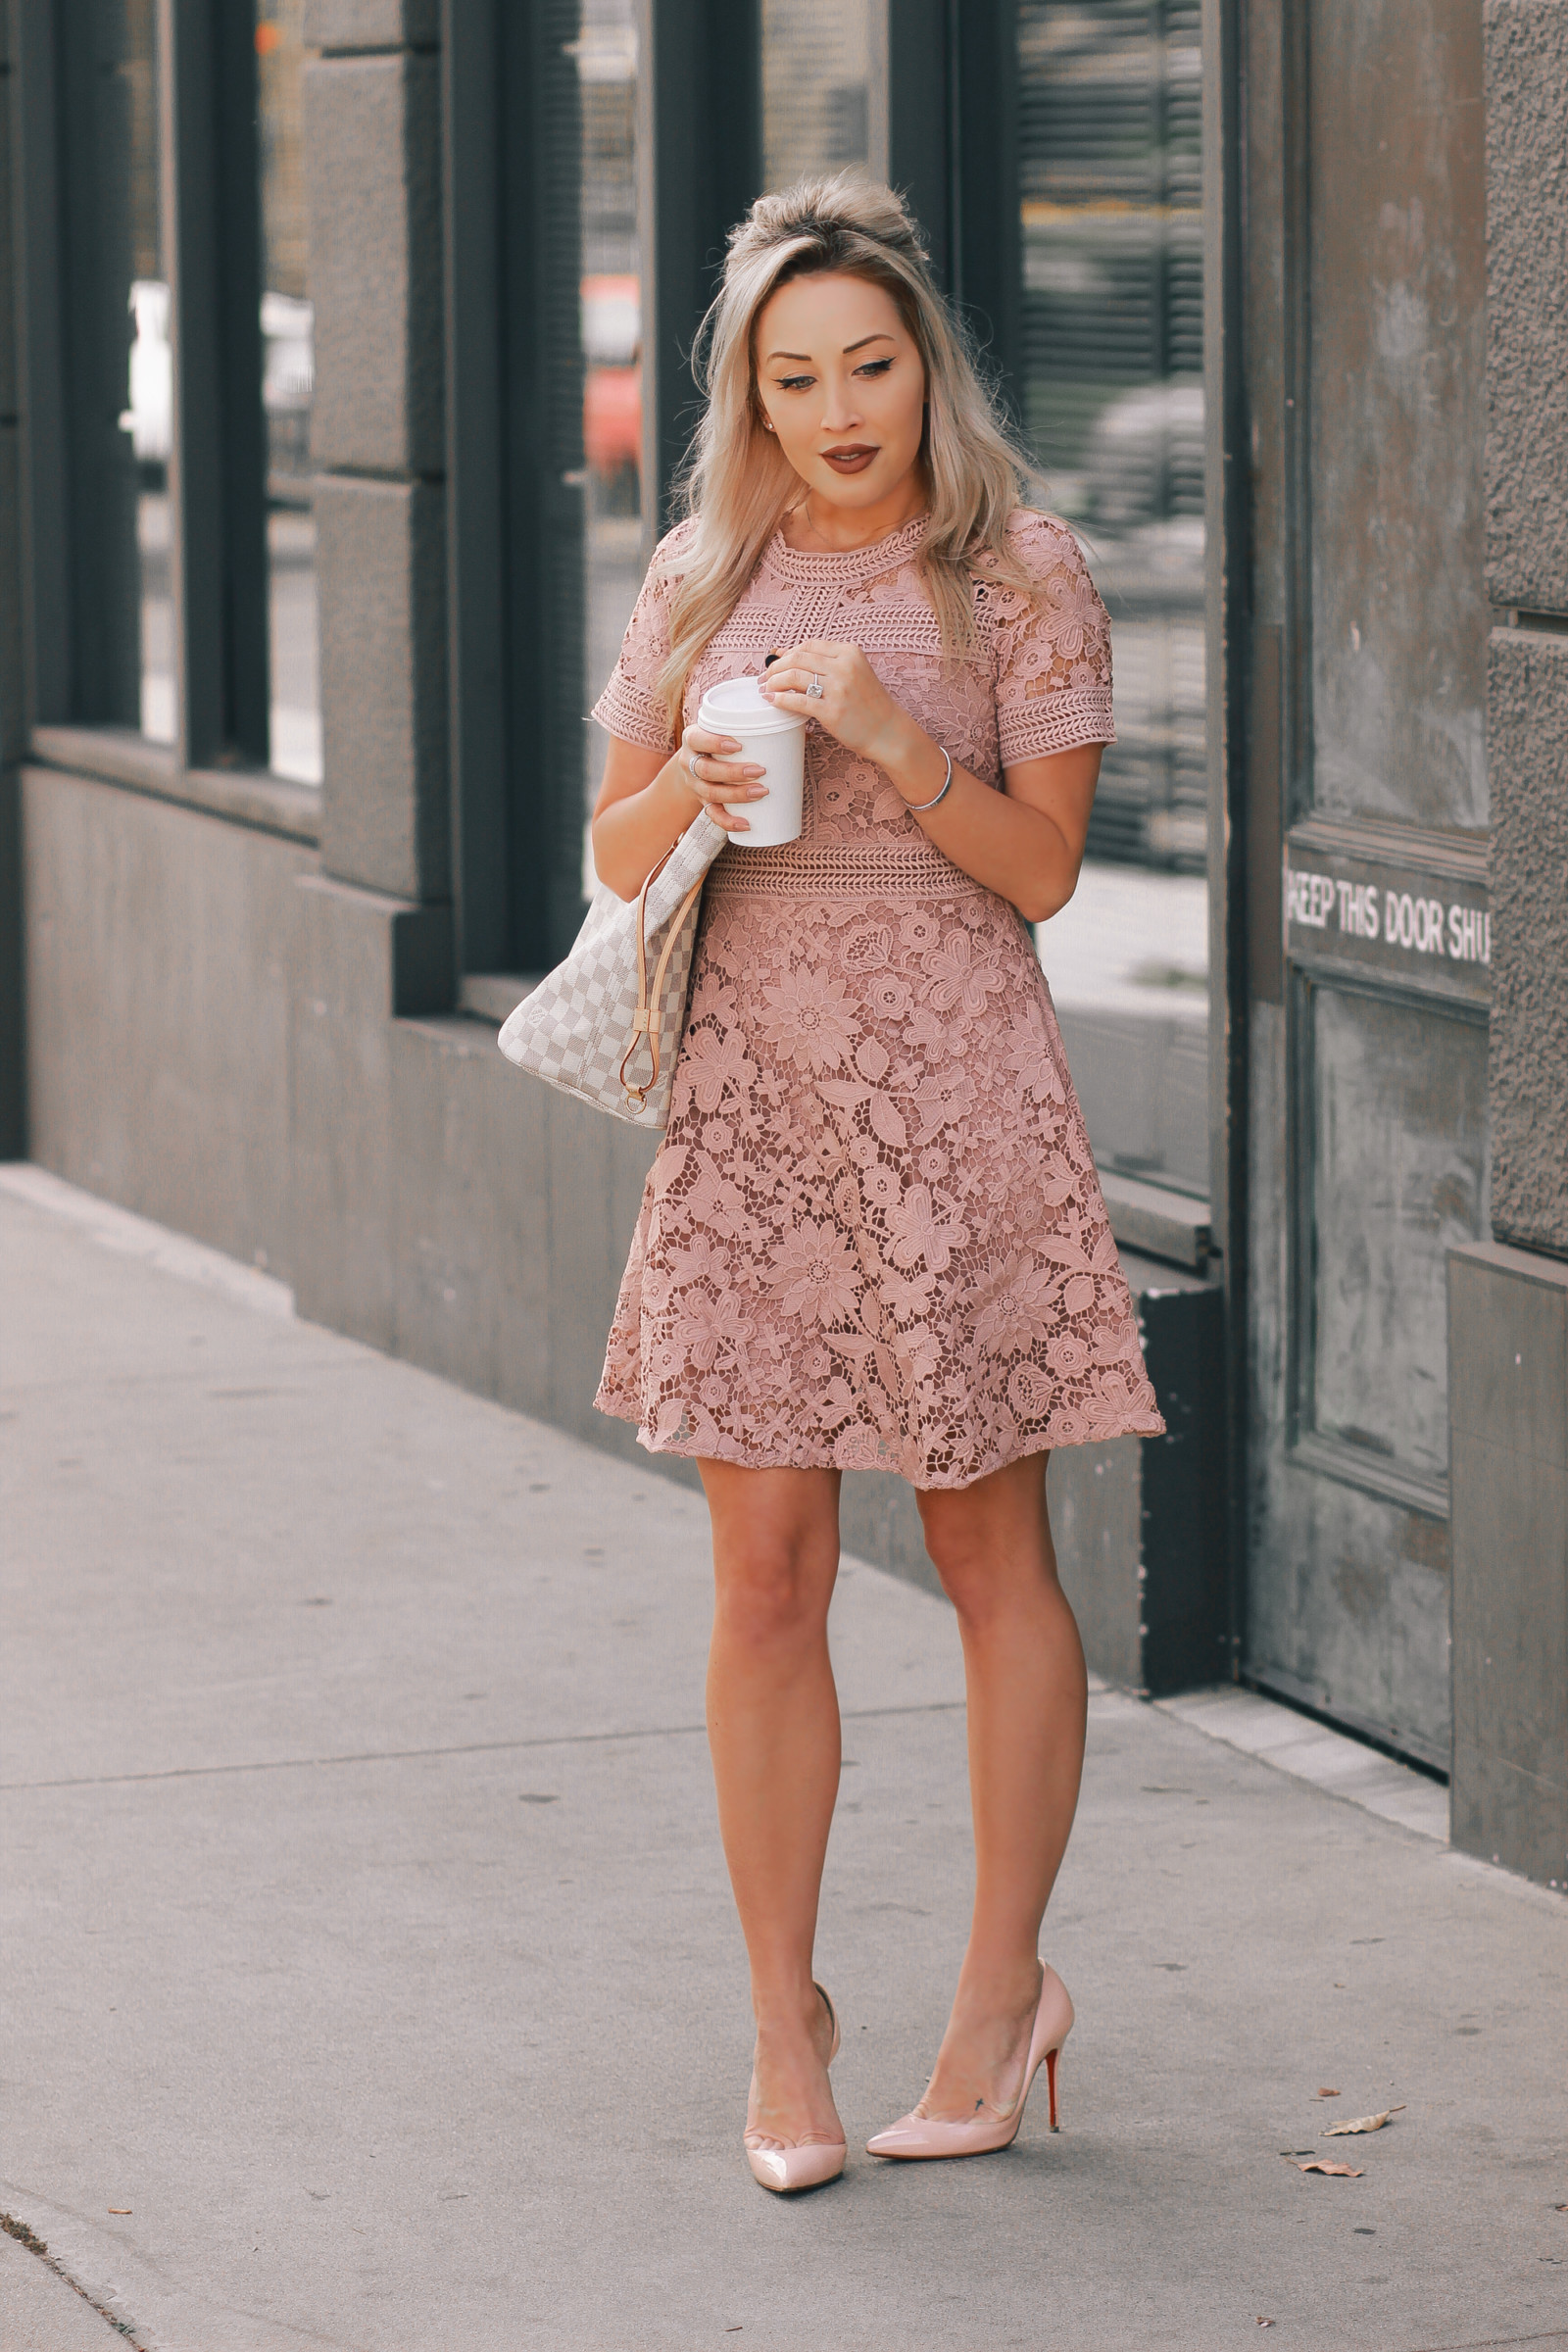 Blondie in the City   Pretty Pink Spring Dress   Louis Vuitton Neverfull   Pink Louboutin's